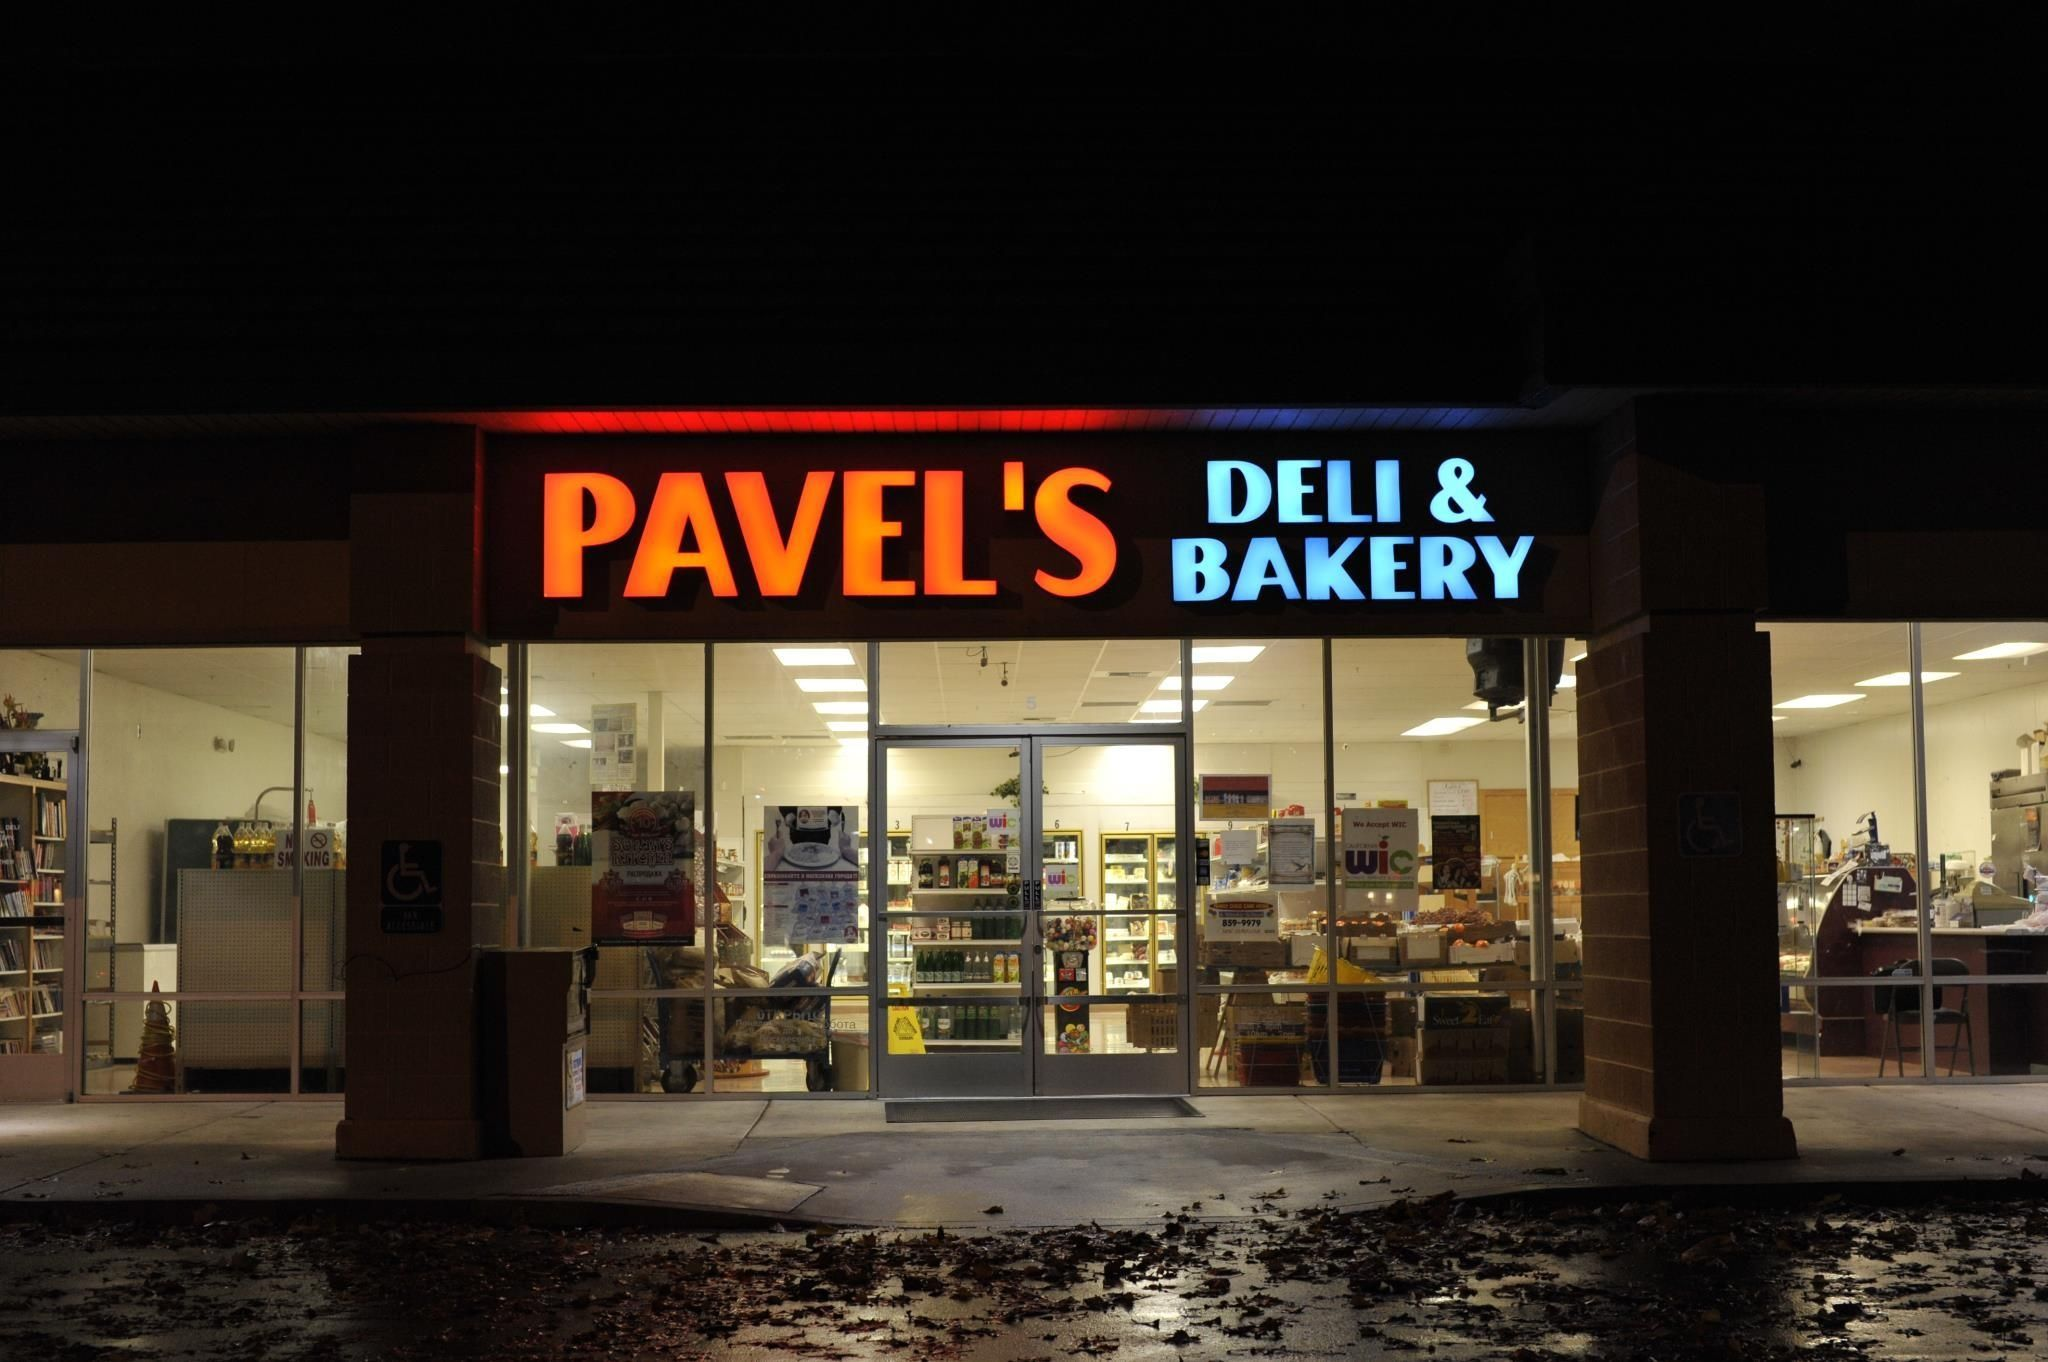 Pavels Deli and Bakery